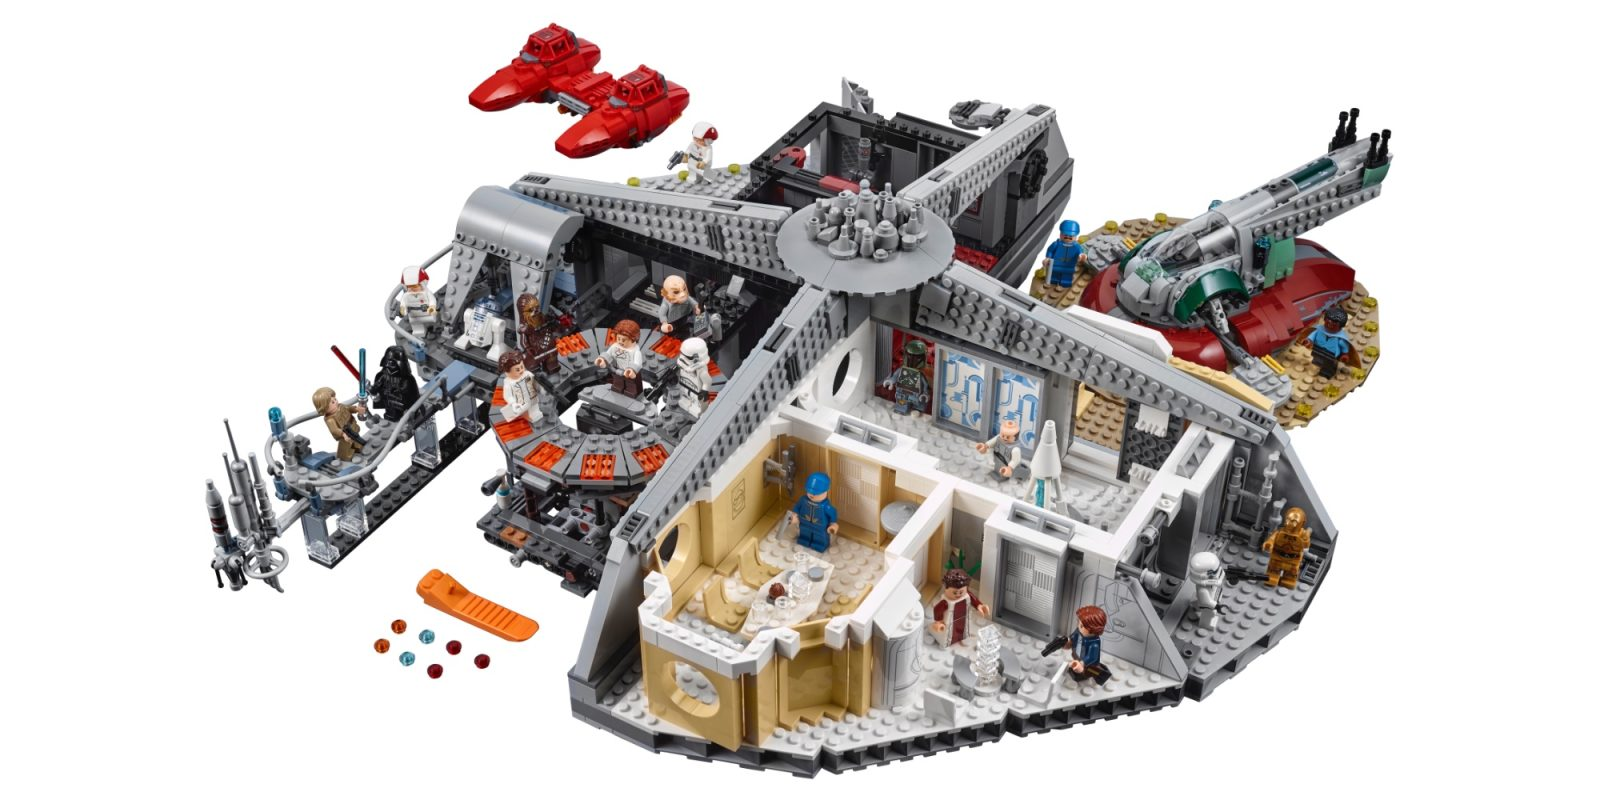 Assemble a $60 discount on LEGO's 2,800-piece Betrayal at Cloud City set, more